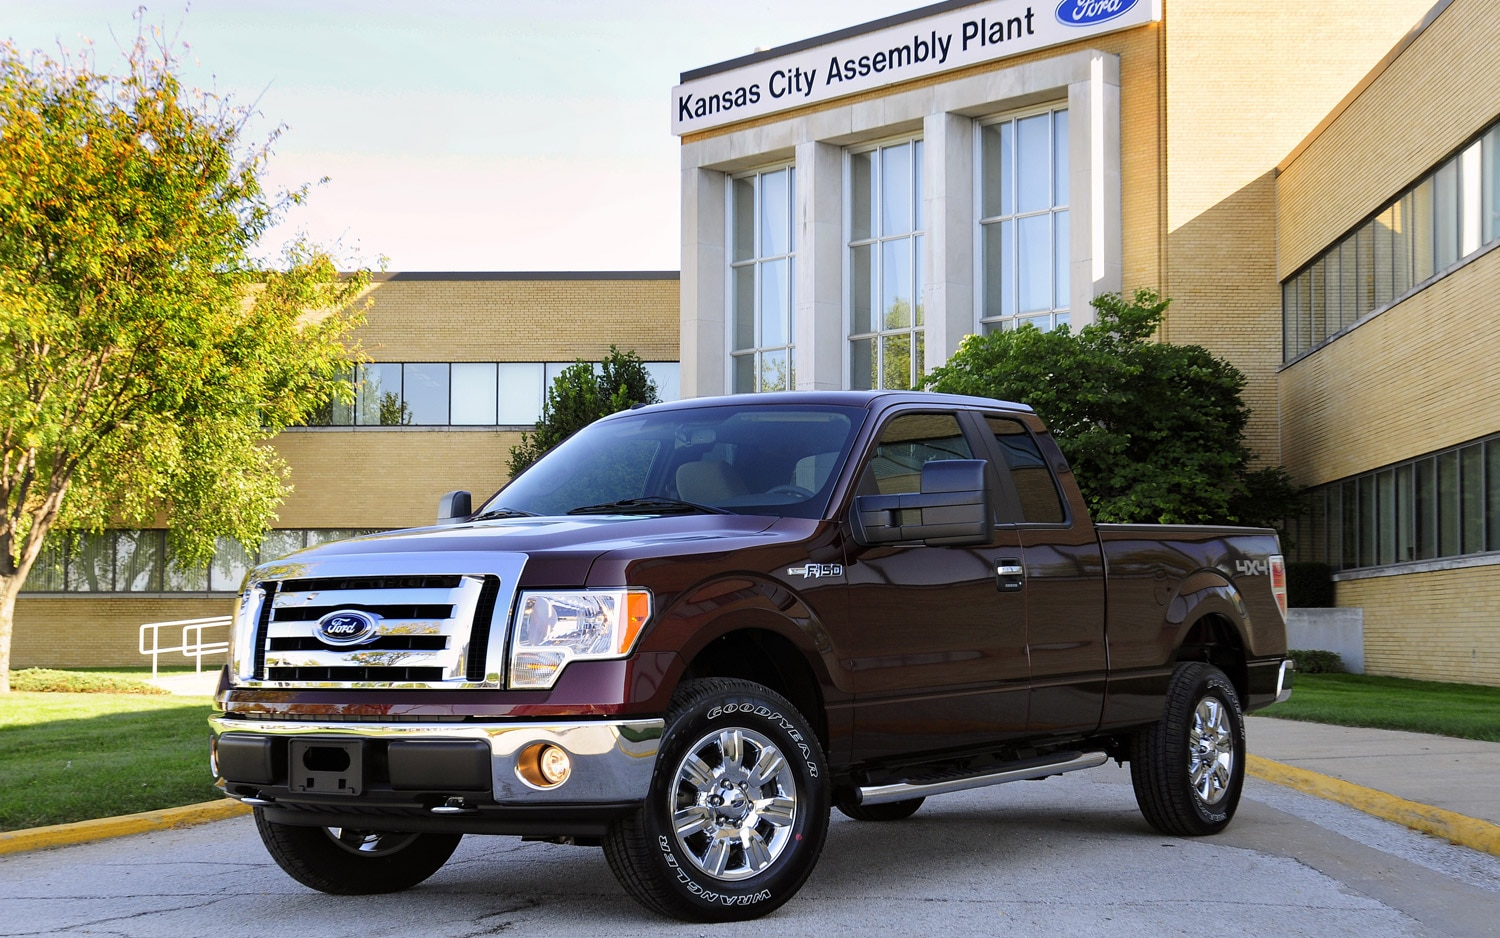 Kansas City Assembly Plant With 2009 Ford F 1501